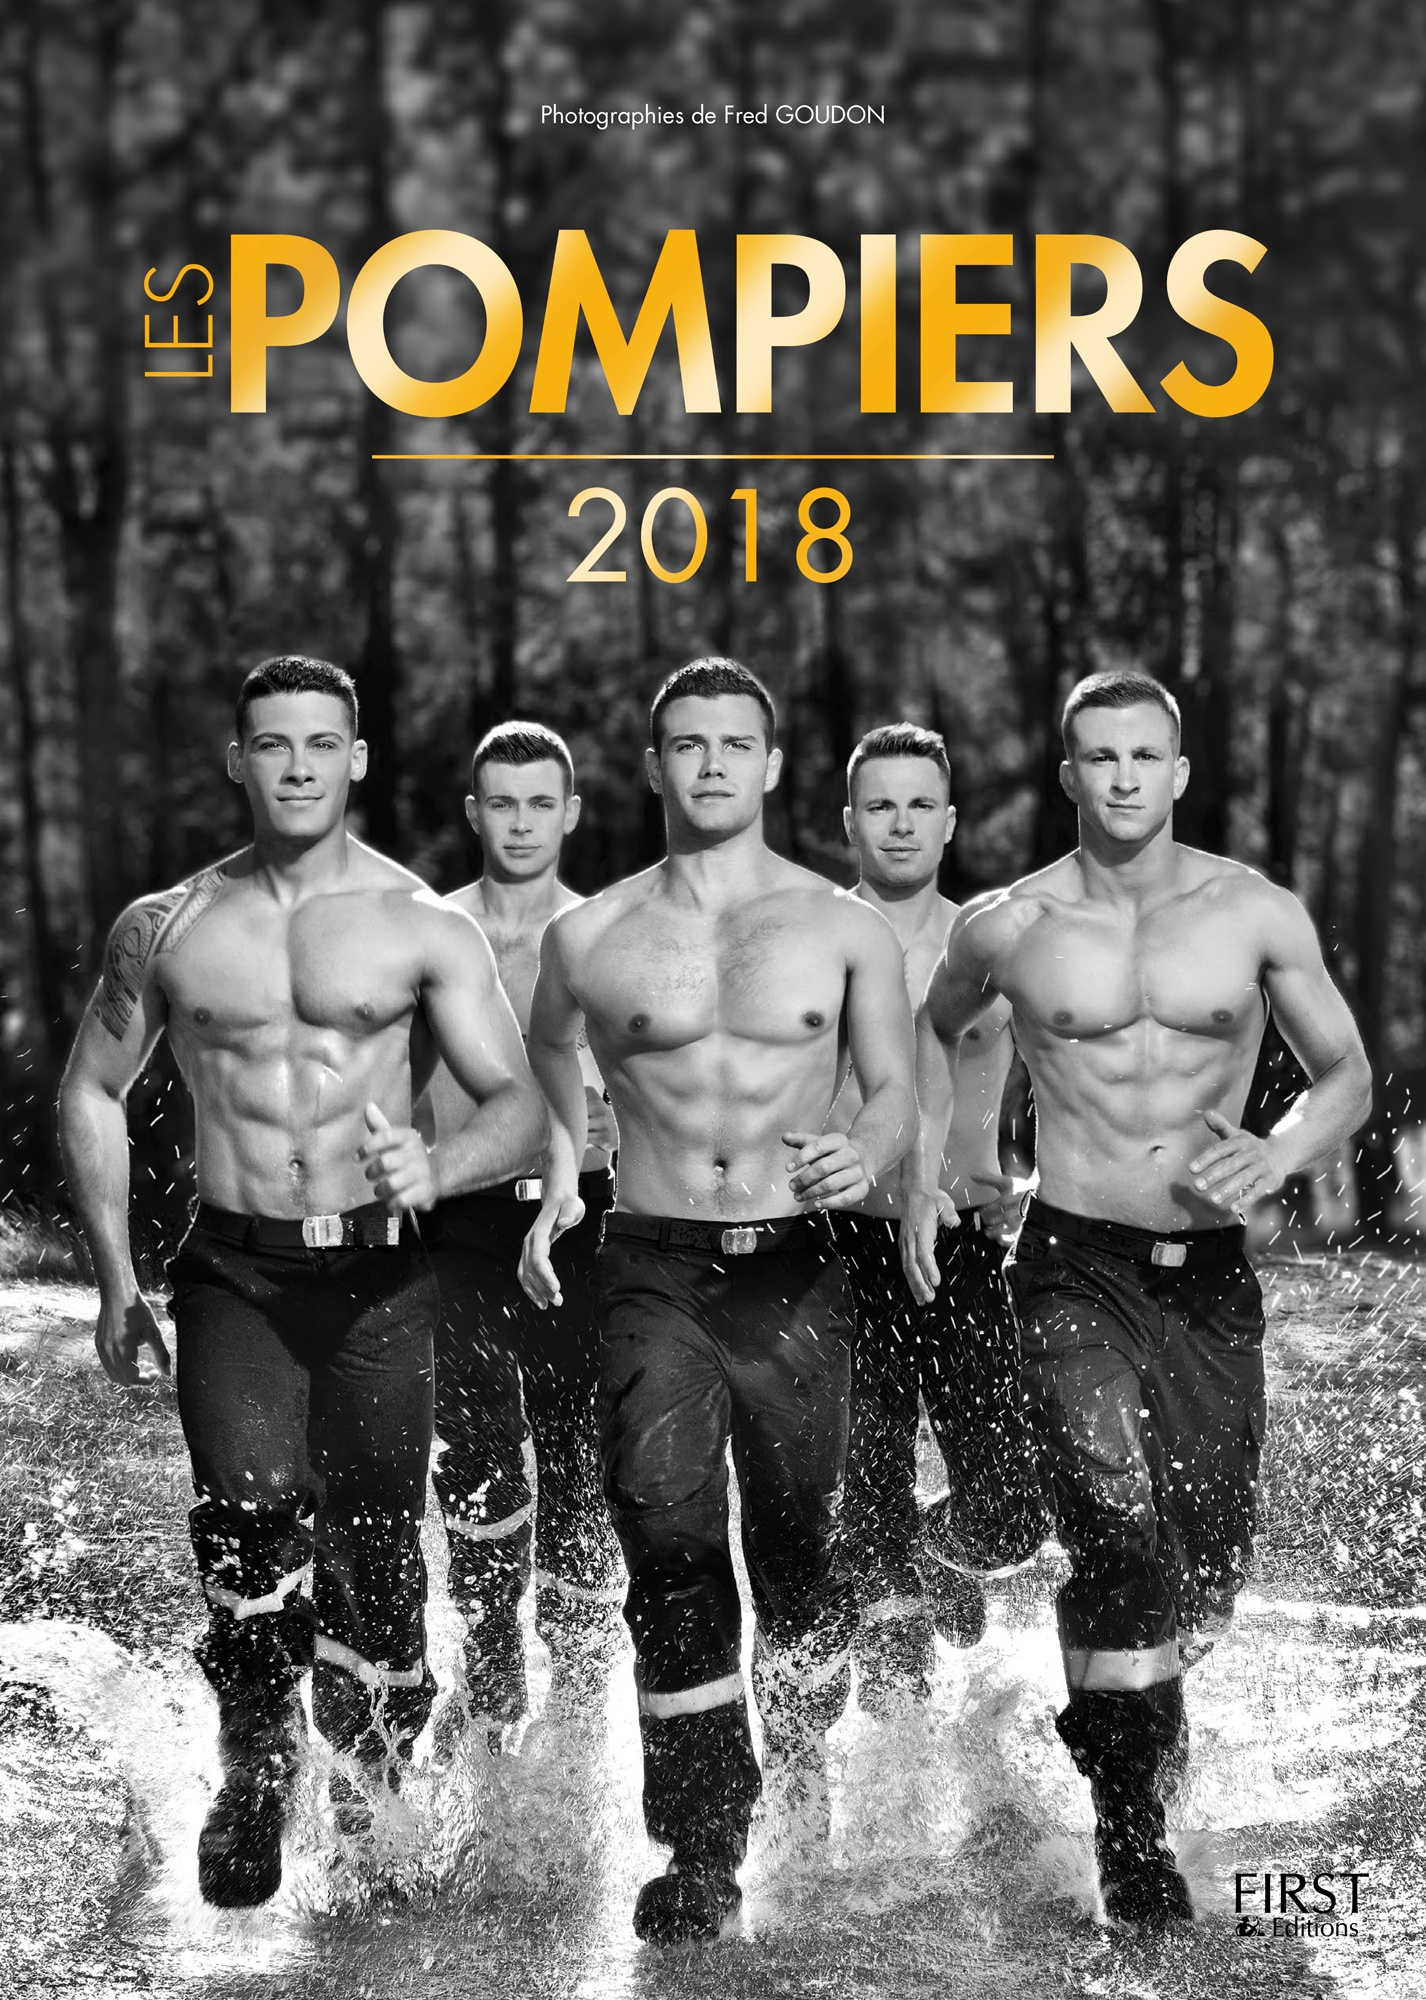 Les POMPIERS  2018 FIRST copyright Fred Goudon cover  (2)